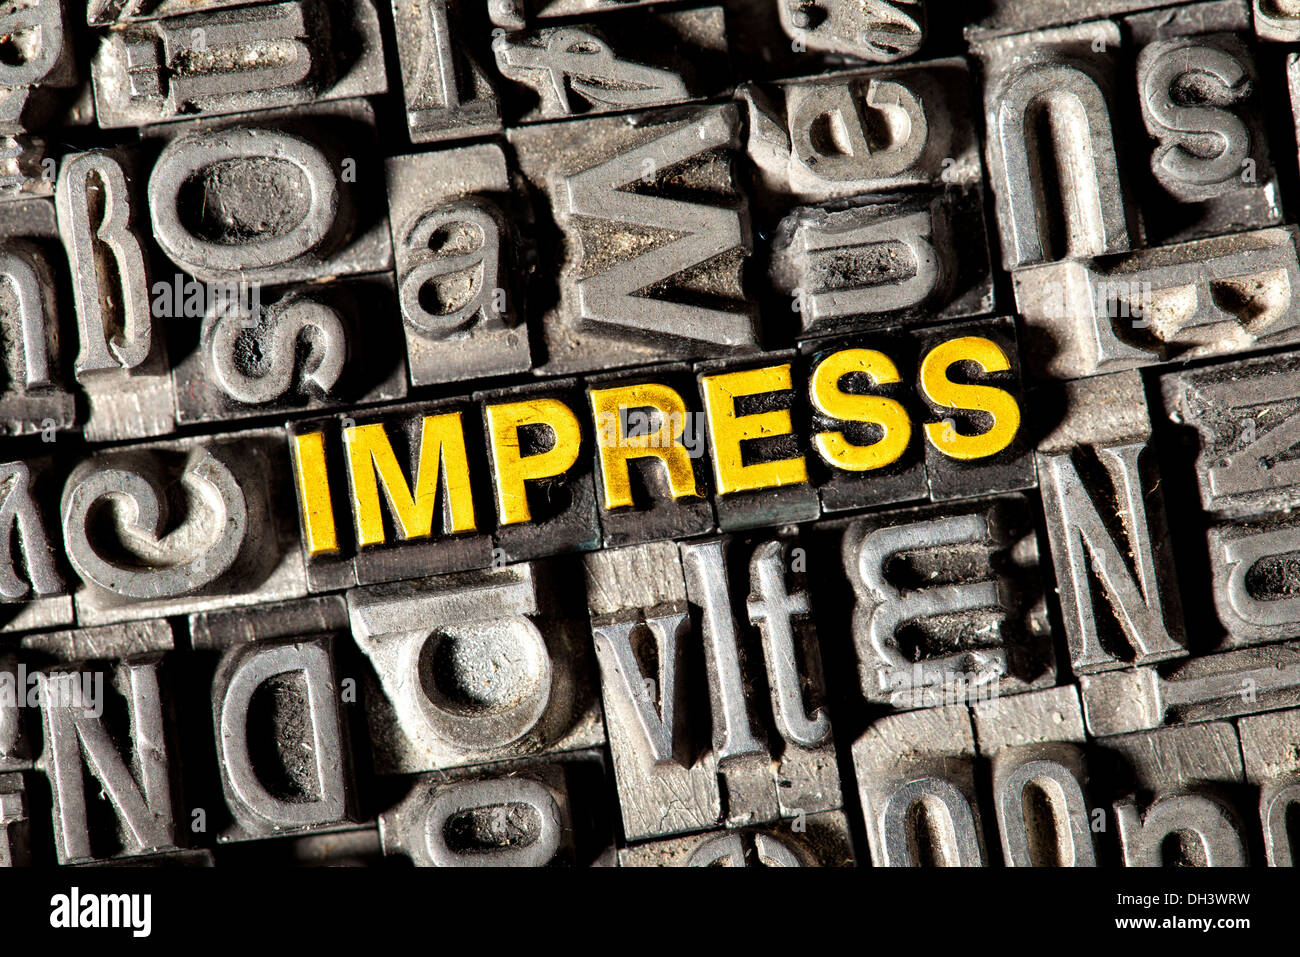 Old lead letters forming the word Impress - Stock Image